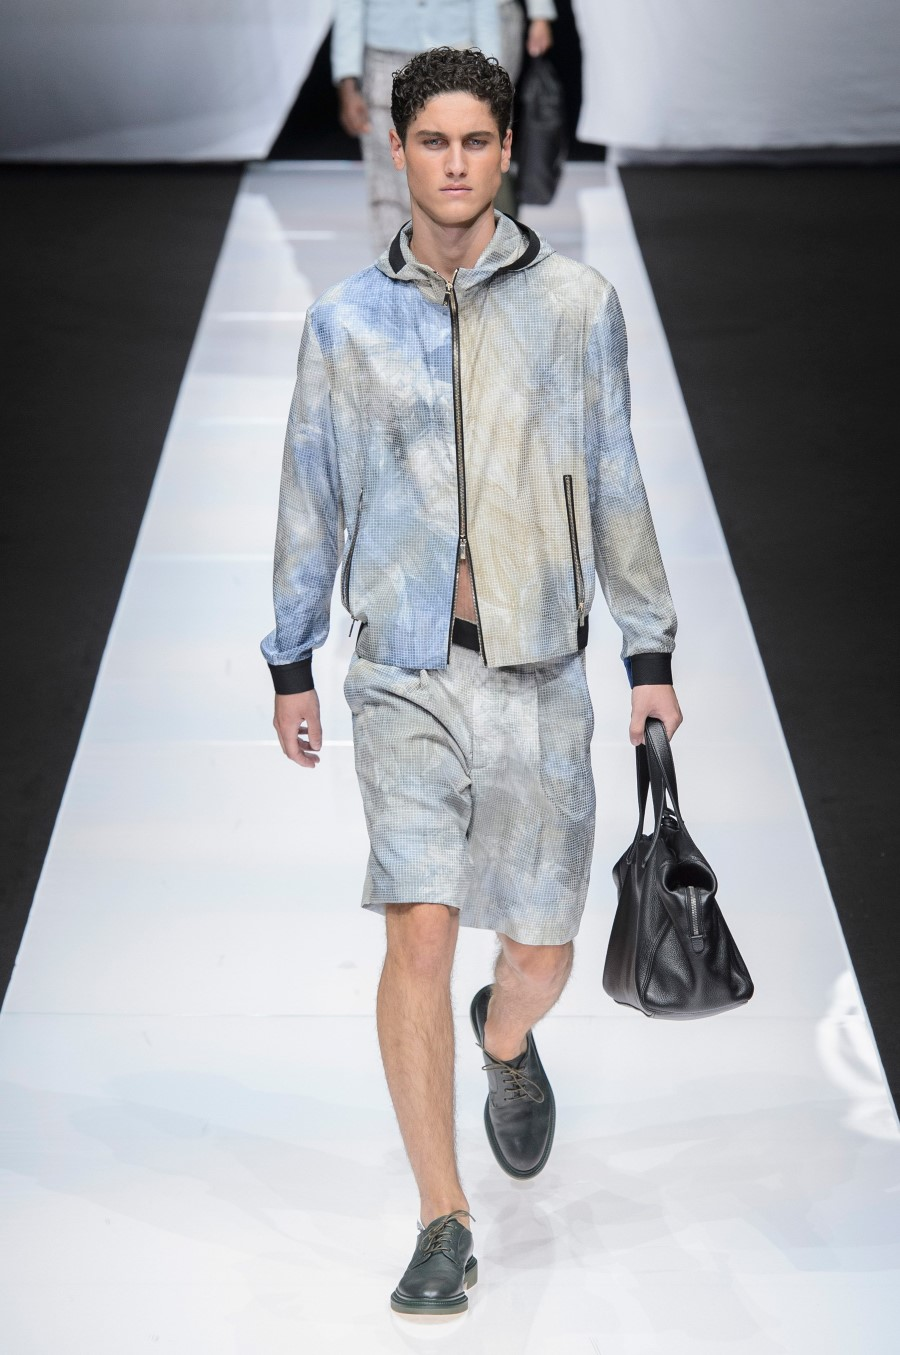 Giorgio Armani Spring Summer 2019 - Milan Fashion Week